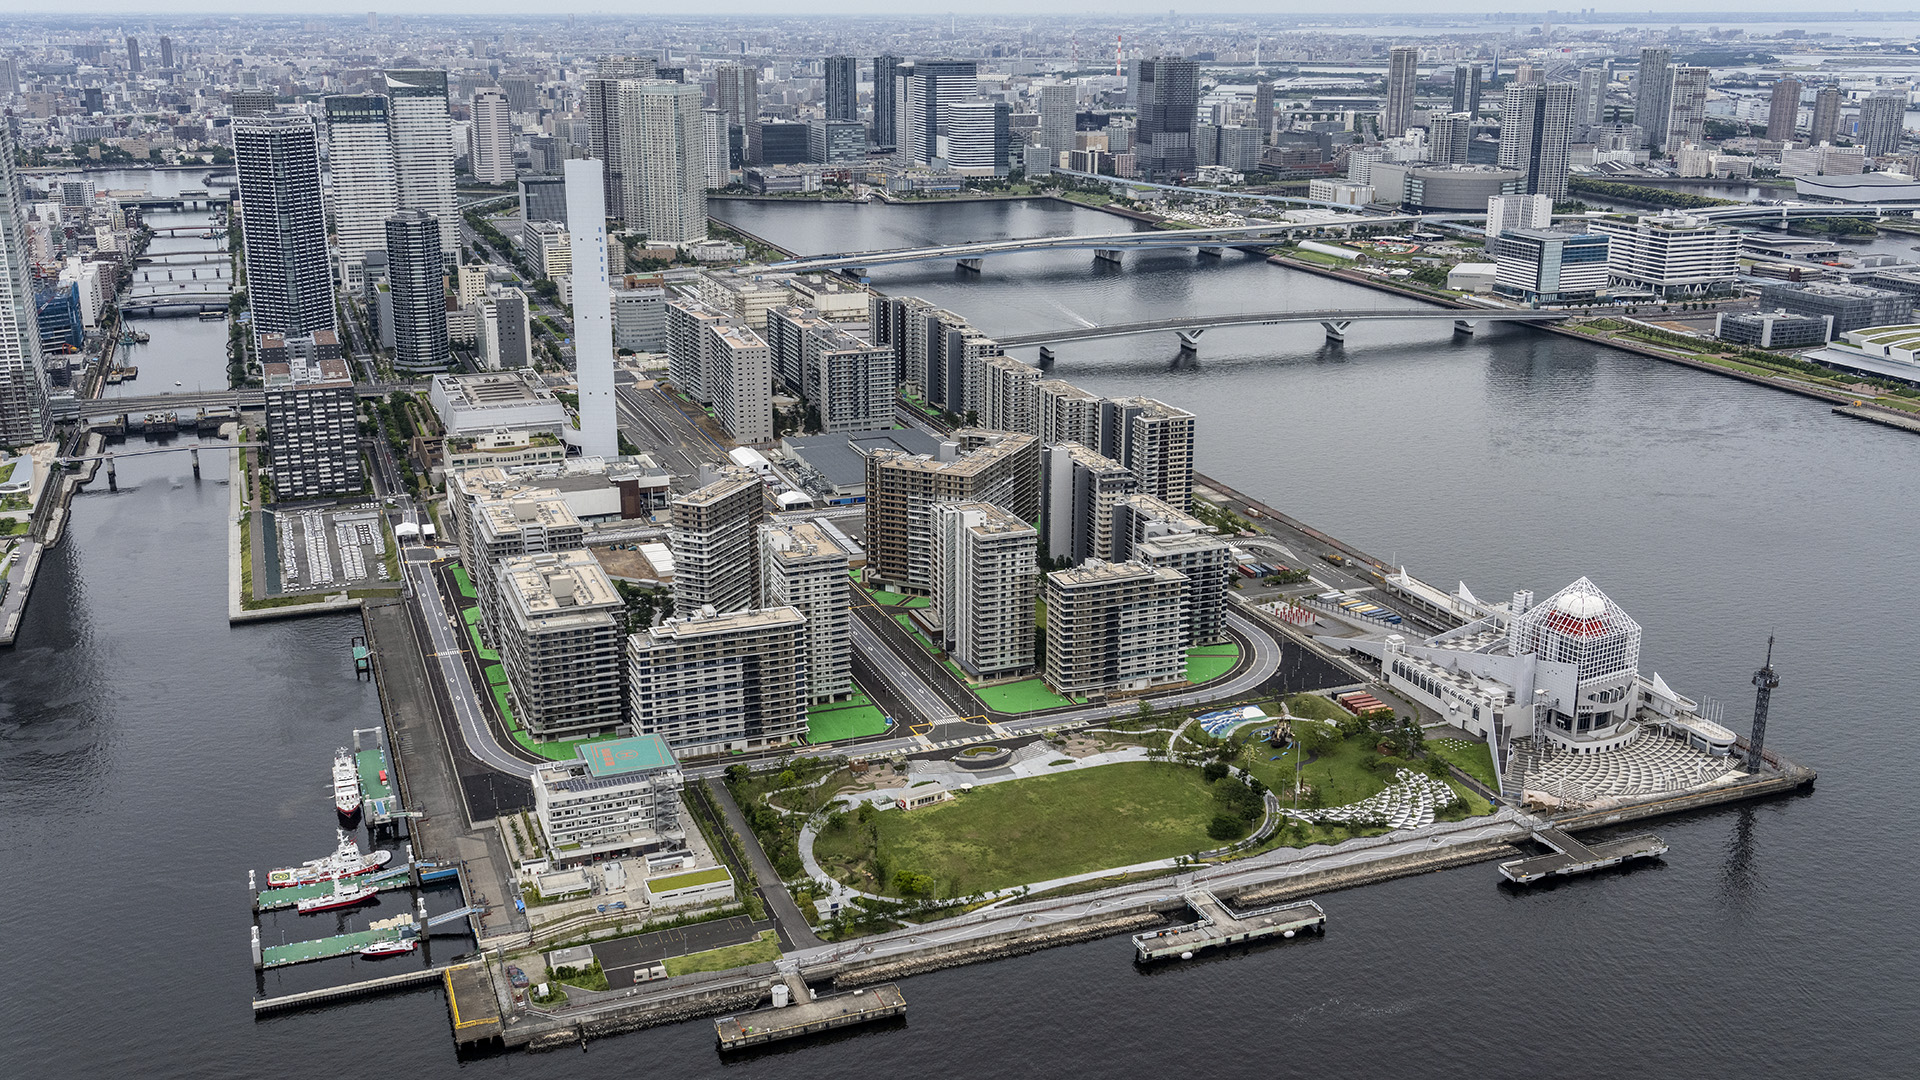 Tokyo 2020 Olympic Village Opens Its Doors, Welcomes Athletes